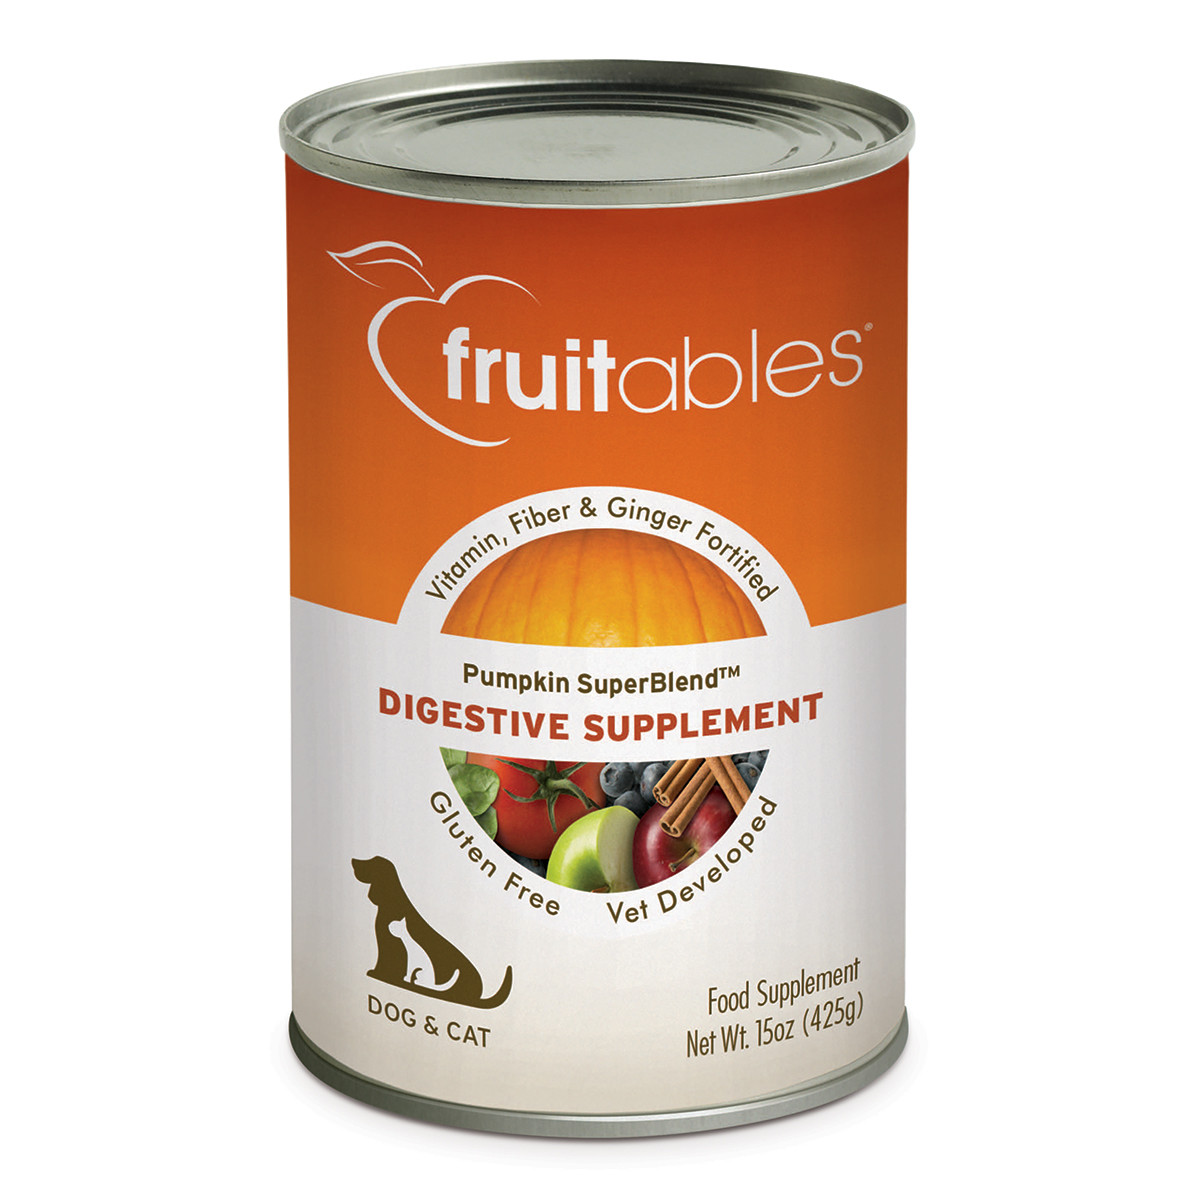 click here to shop Fruitables Pumpkin SuperBlend Digestive Supplement for Dogs & Cats